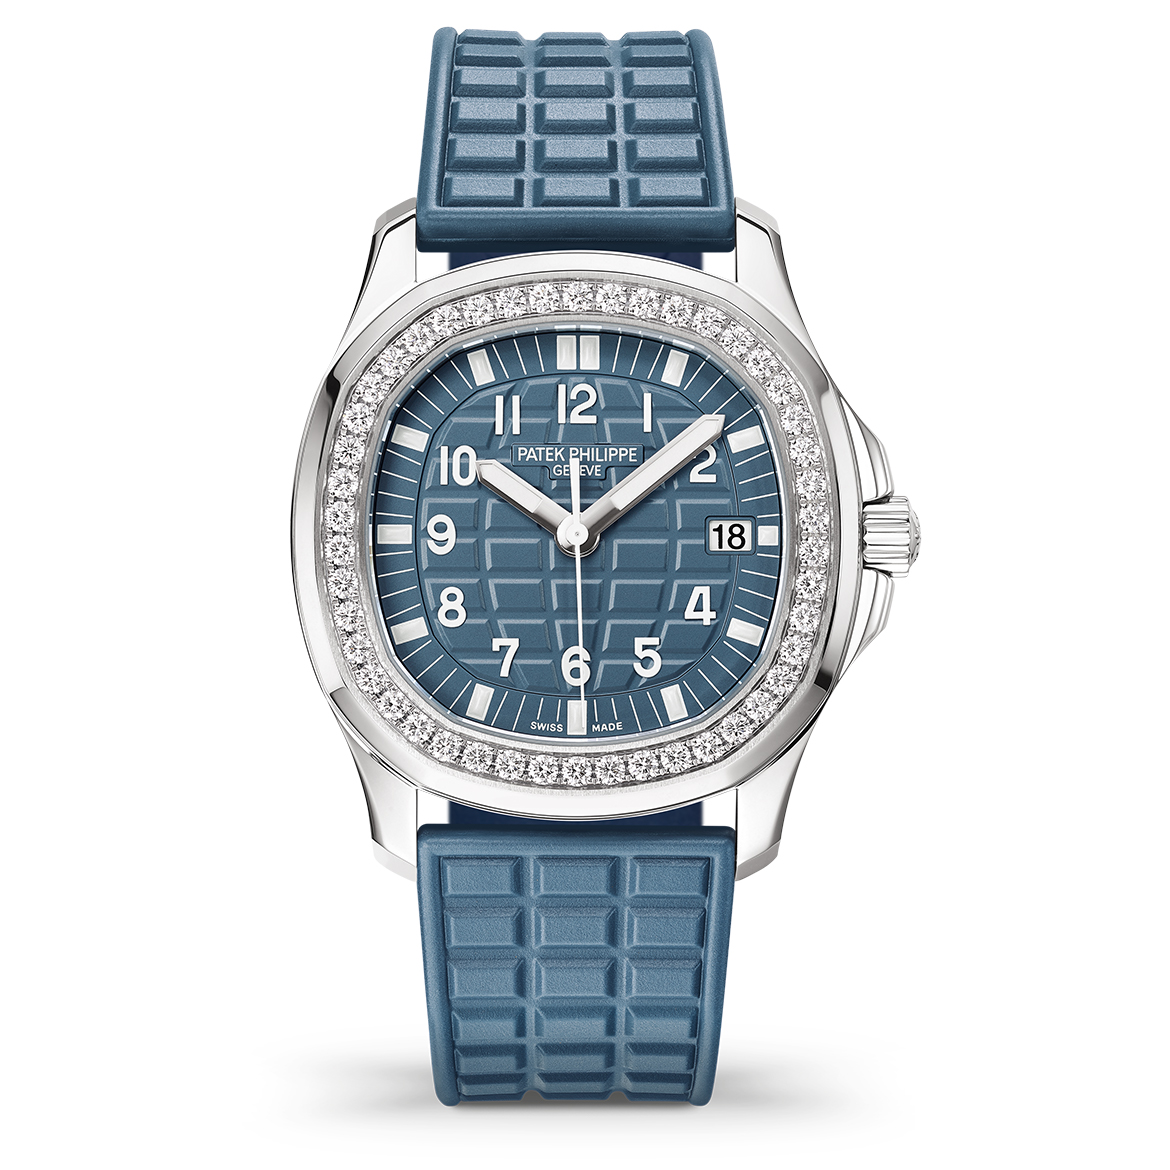 Patek Philippe Singapore The Hour Glass Official Site